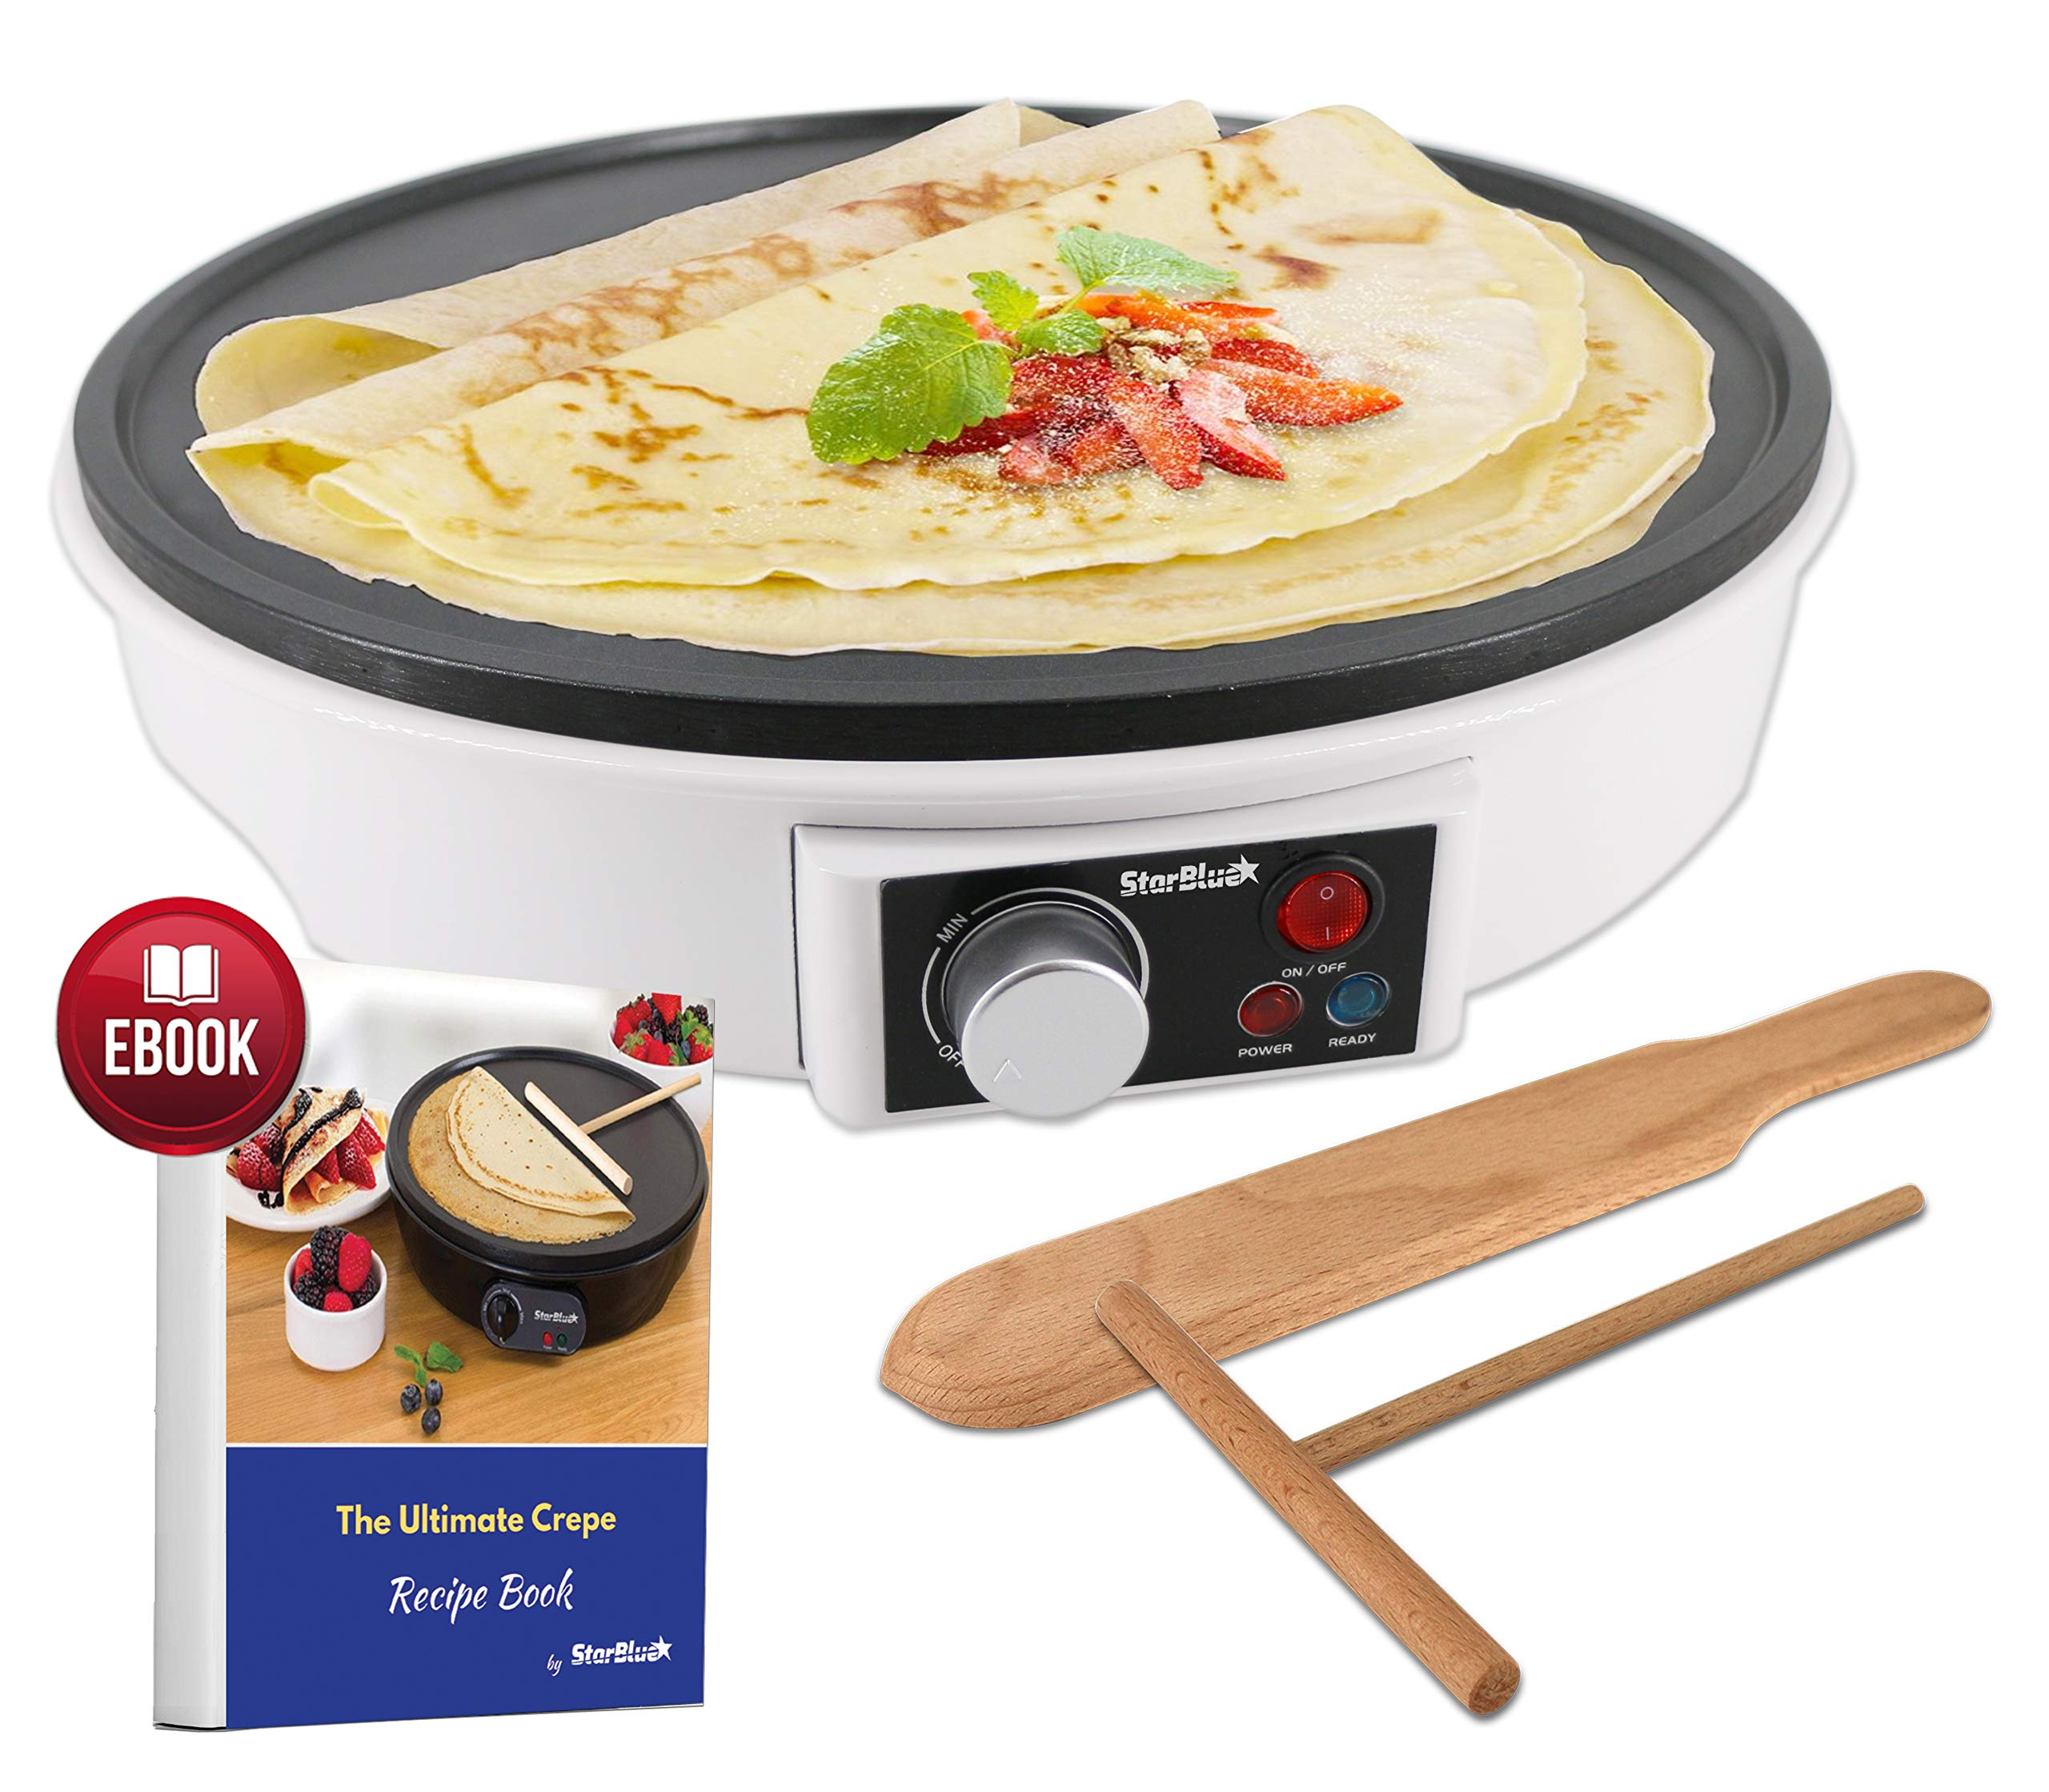 12'' Electric Crepe Maker by StarBlue with FREE Recipes e-book and Wooden Spatula - Nonstick and Portable Pan, Compact, Easy Clean with On/off button AC 120V 50/60Hz 1000W by StarBlue